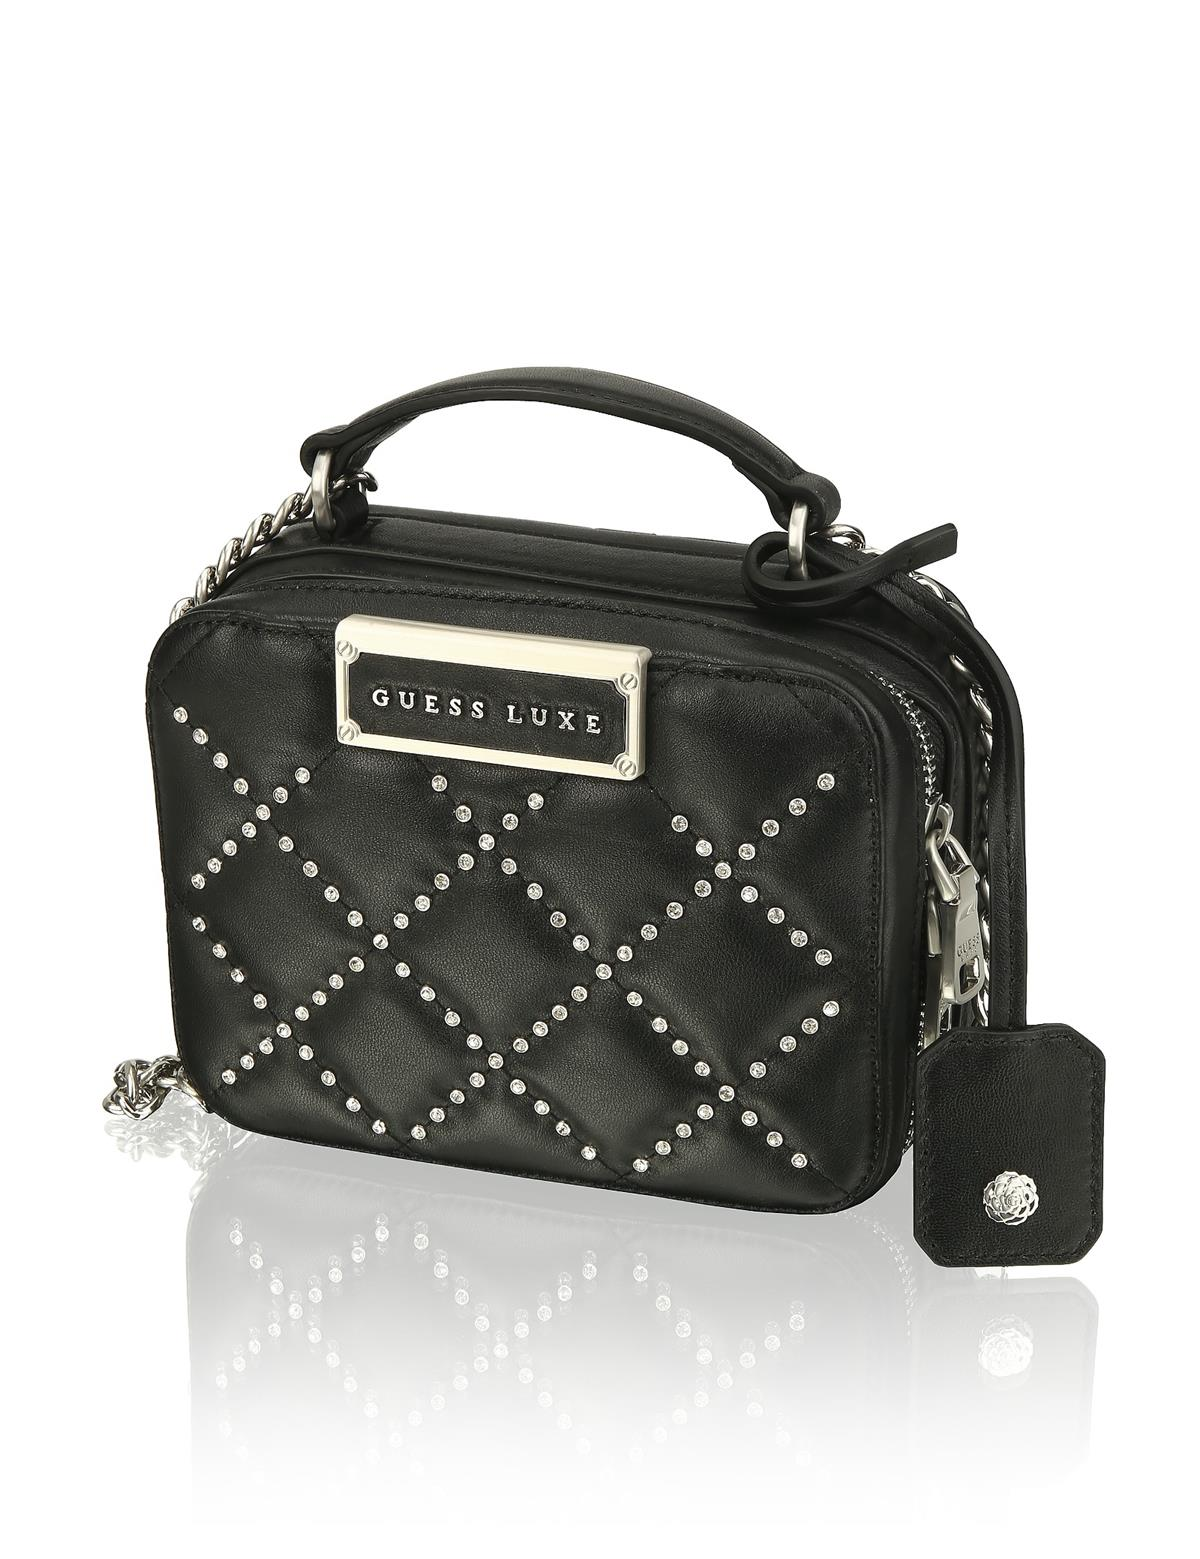 HUMANIC 43 Guess Quilted Bag EUR 170 6131402080